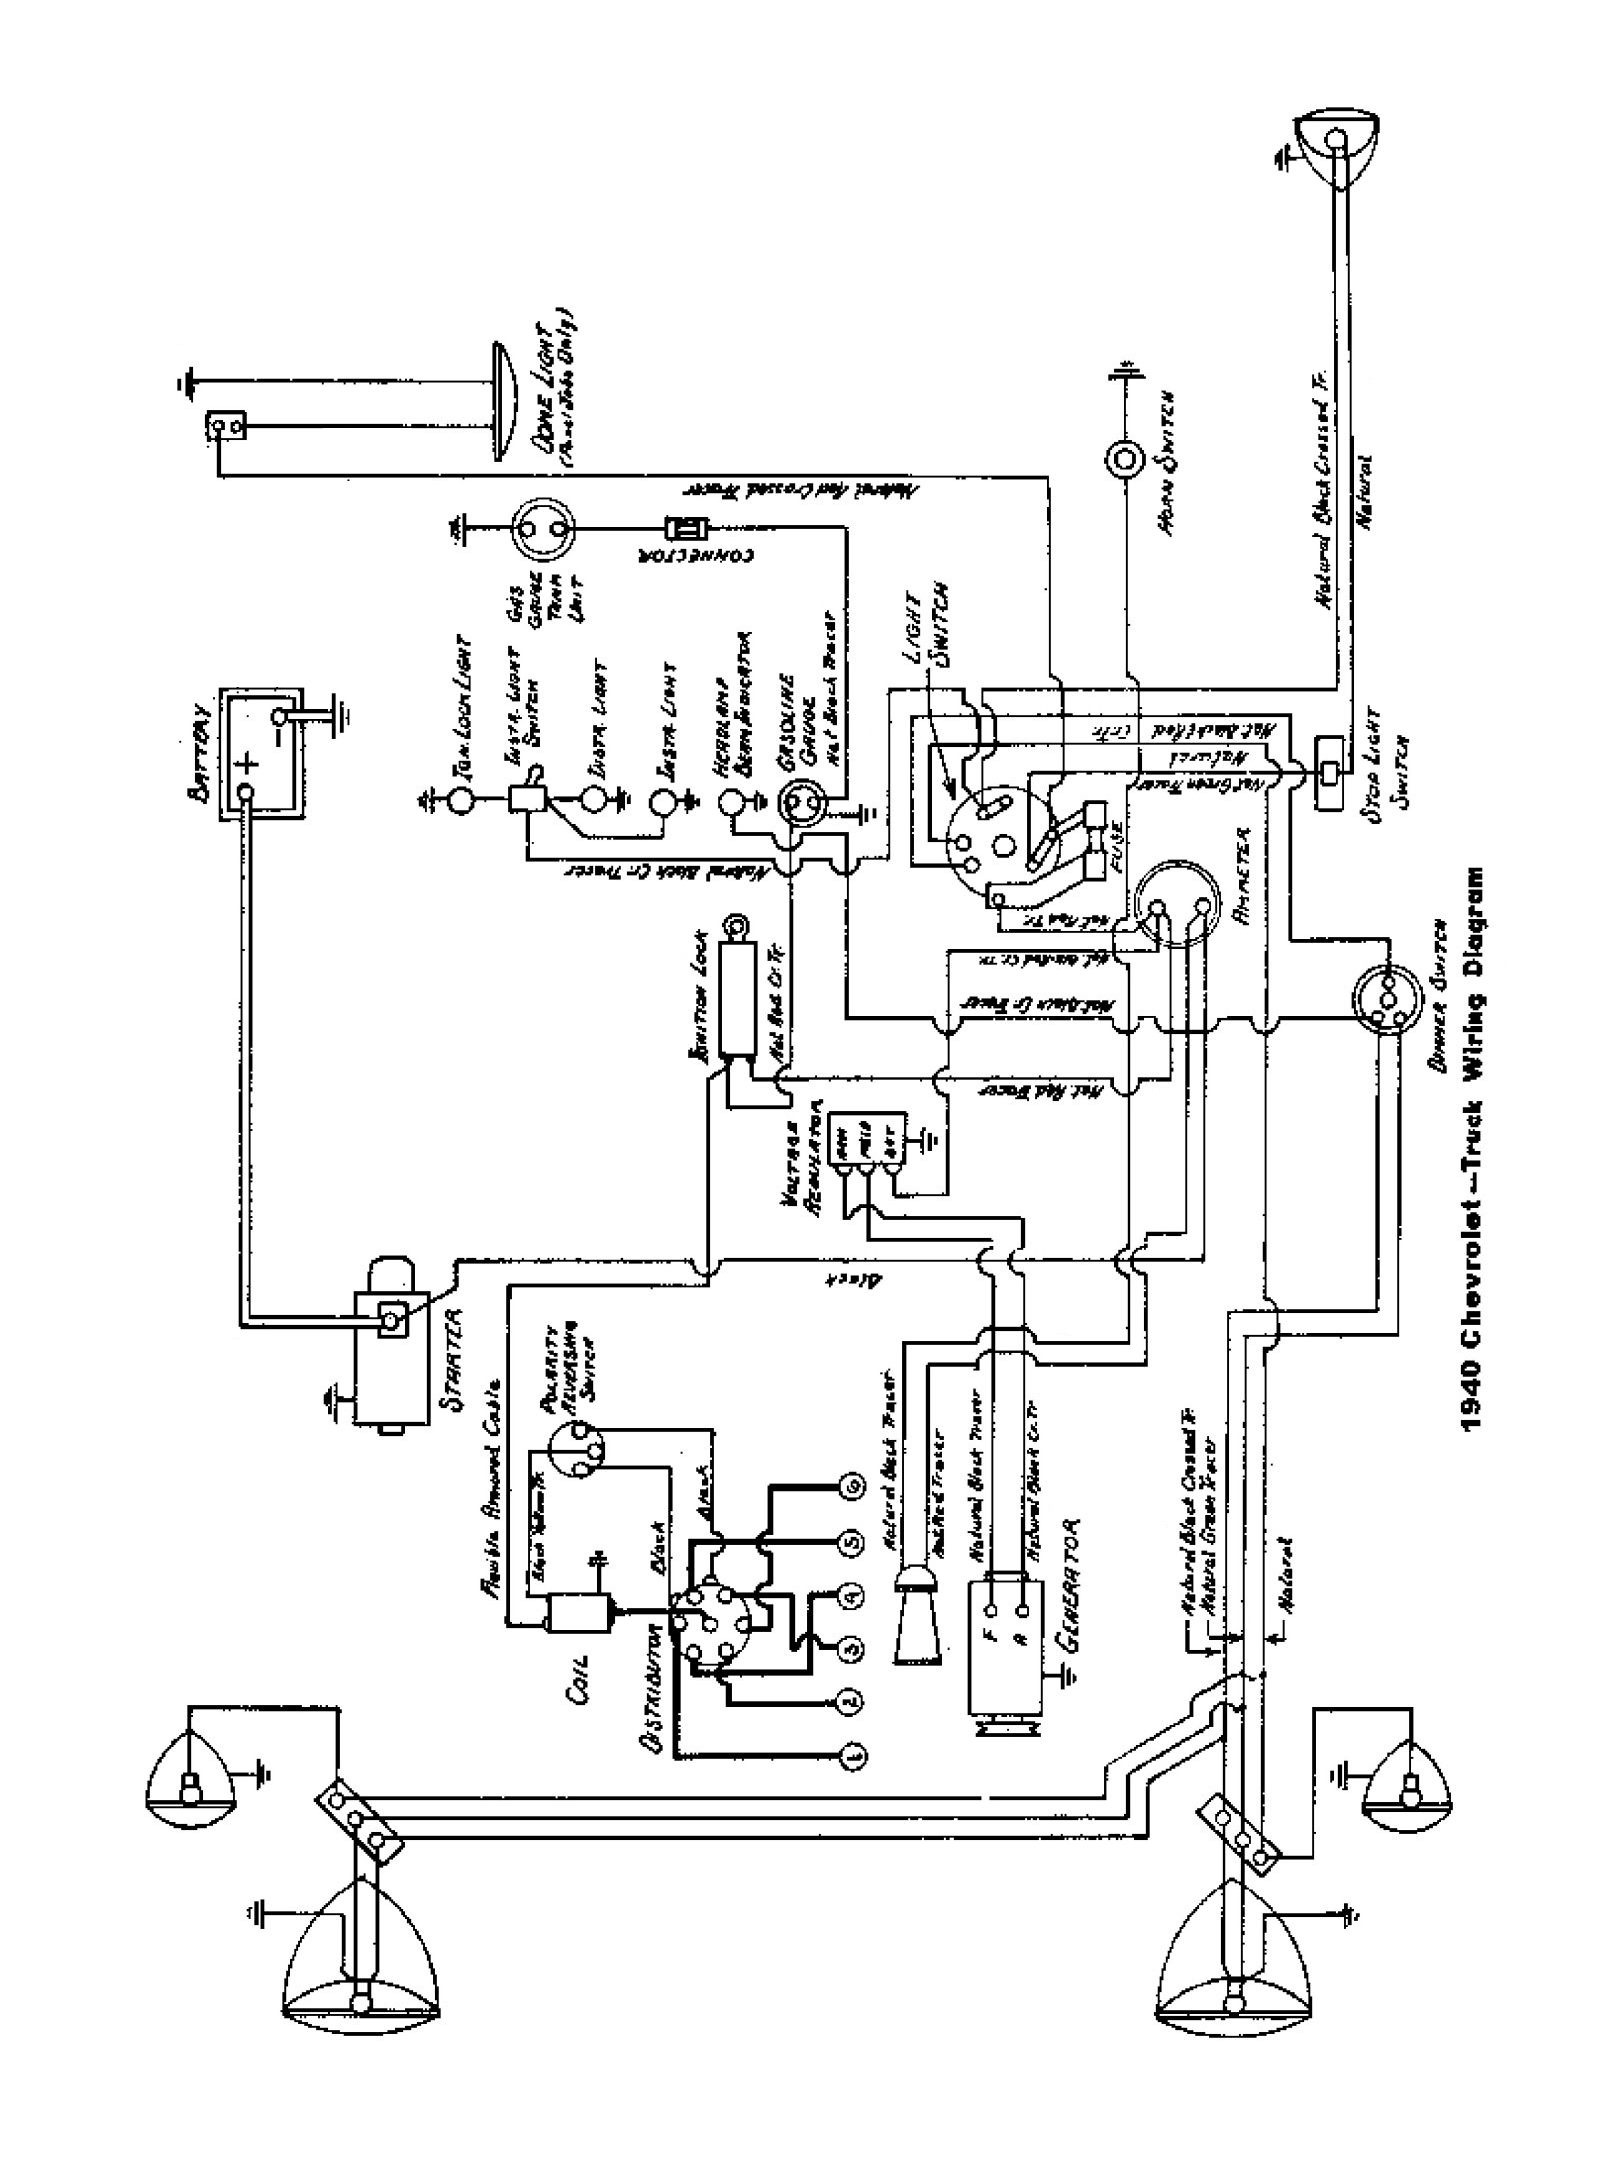 chevy wiring schematics simple wiring diagram schema  chevy wiring diagrams chevy coil wiring diagram chevy wiring schematics